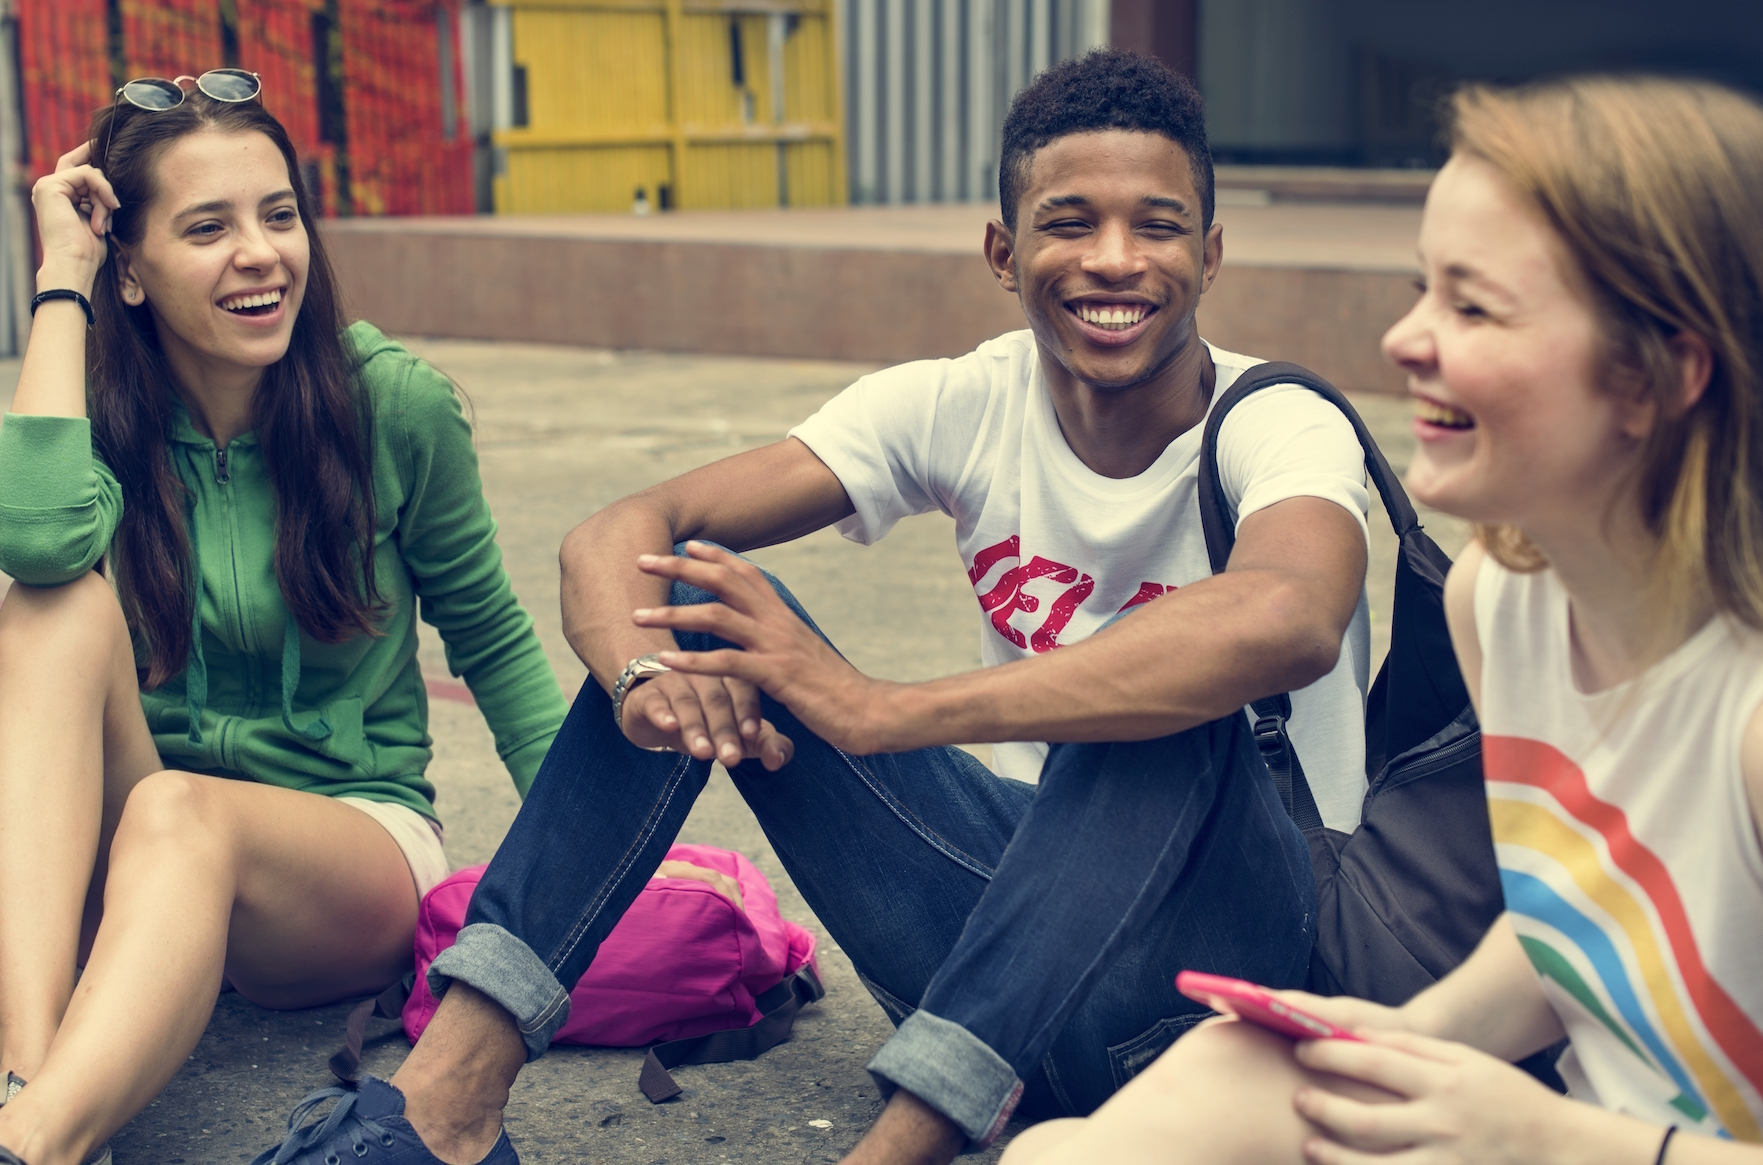 Teens today are less likely to engage in adult activities, and are growing up more slowly than teens of previous decades.